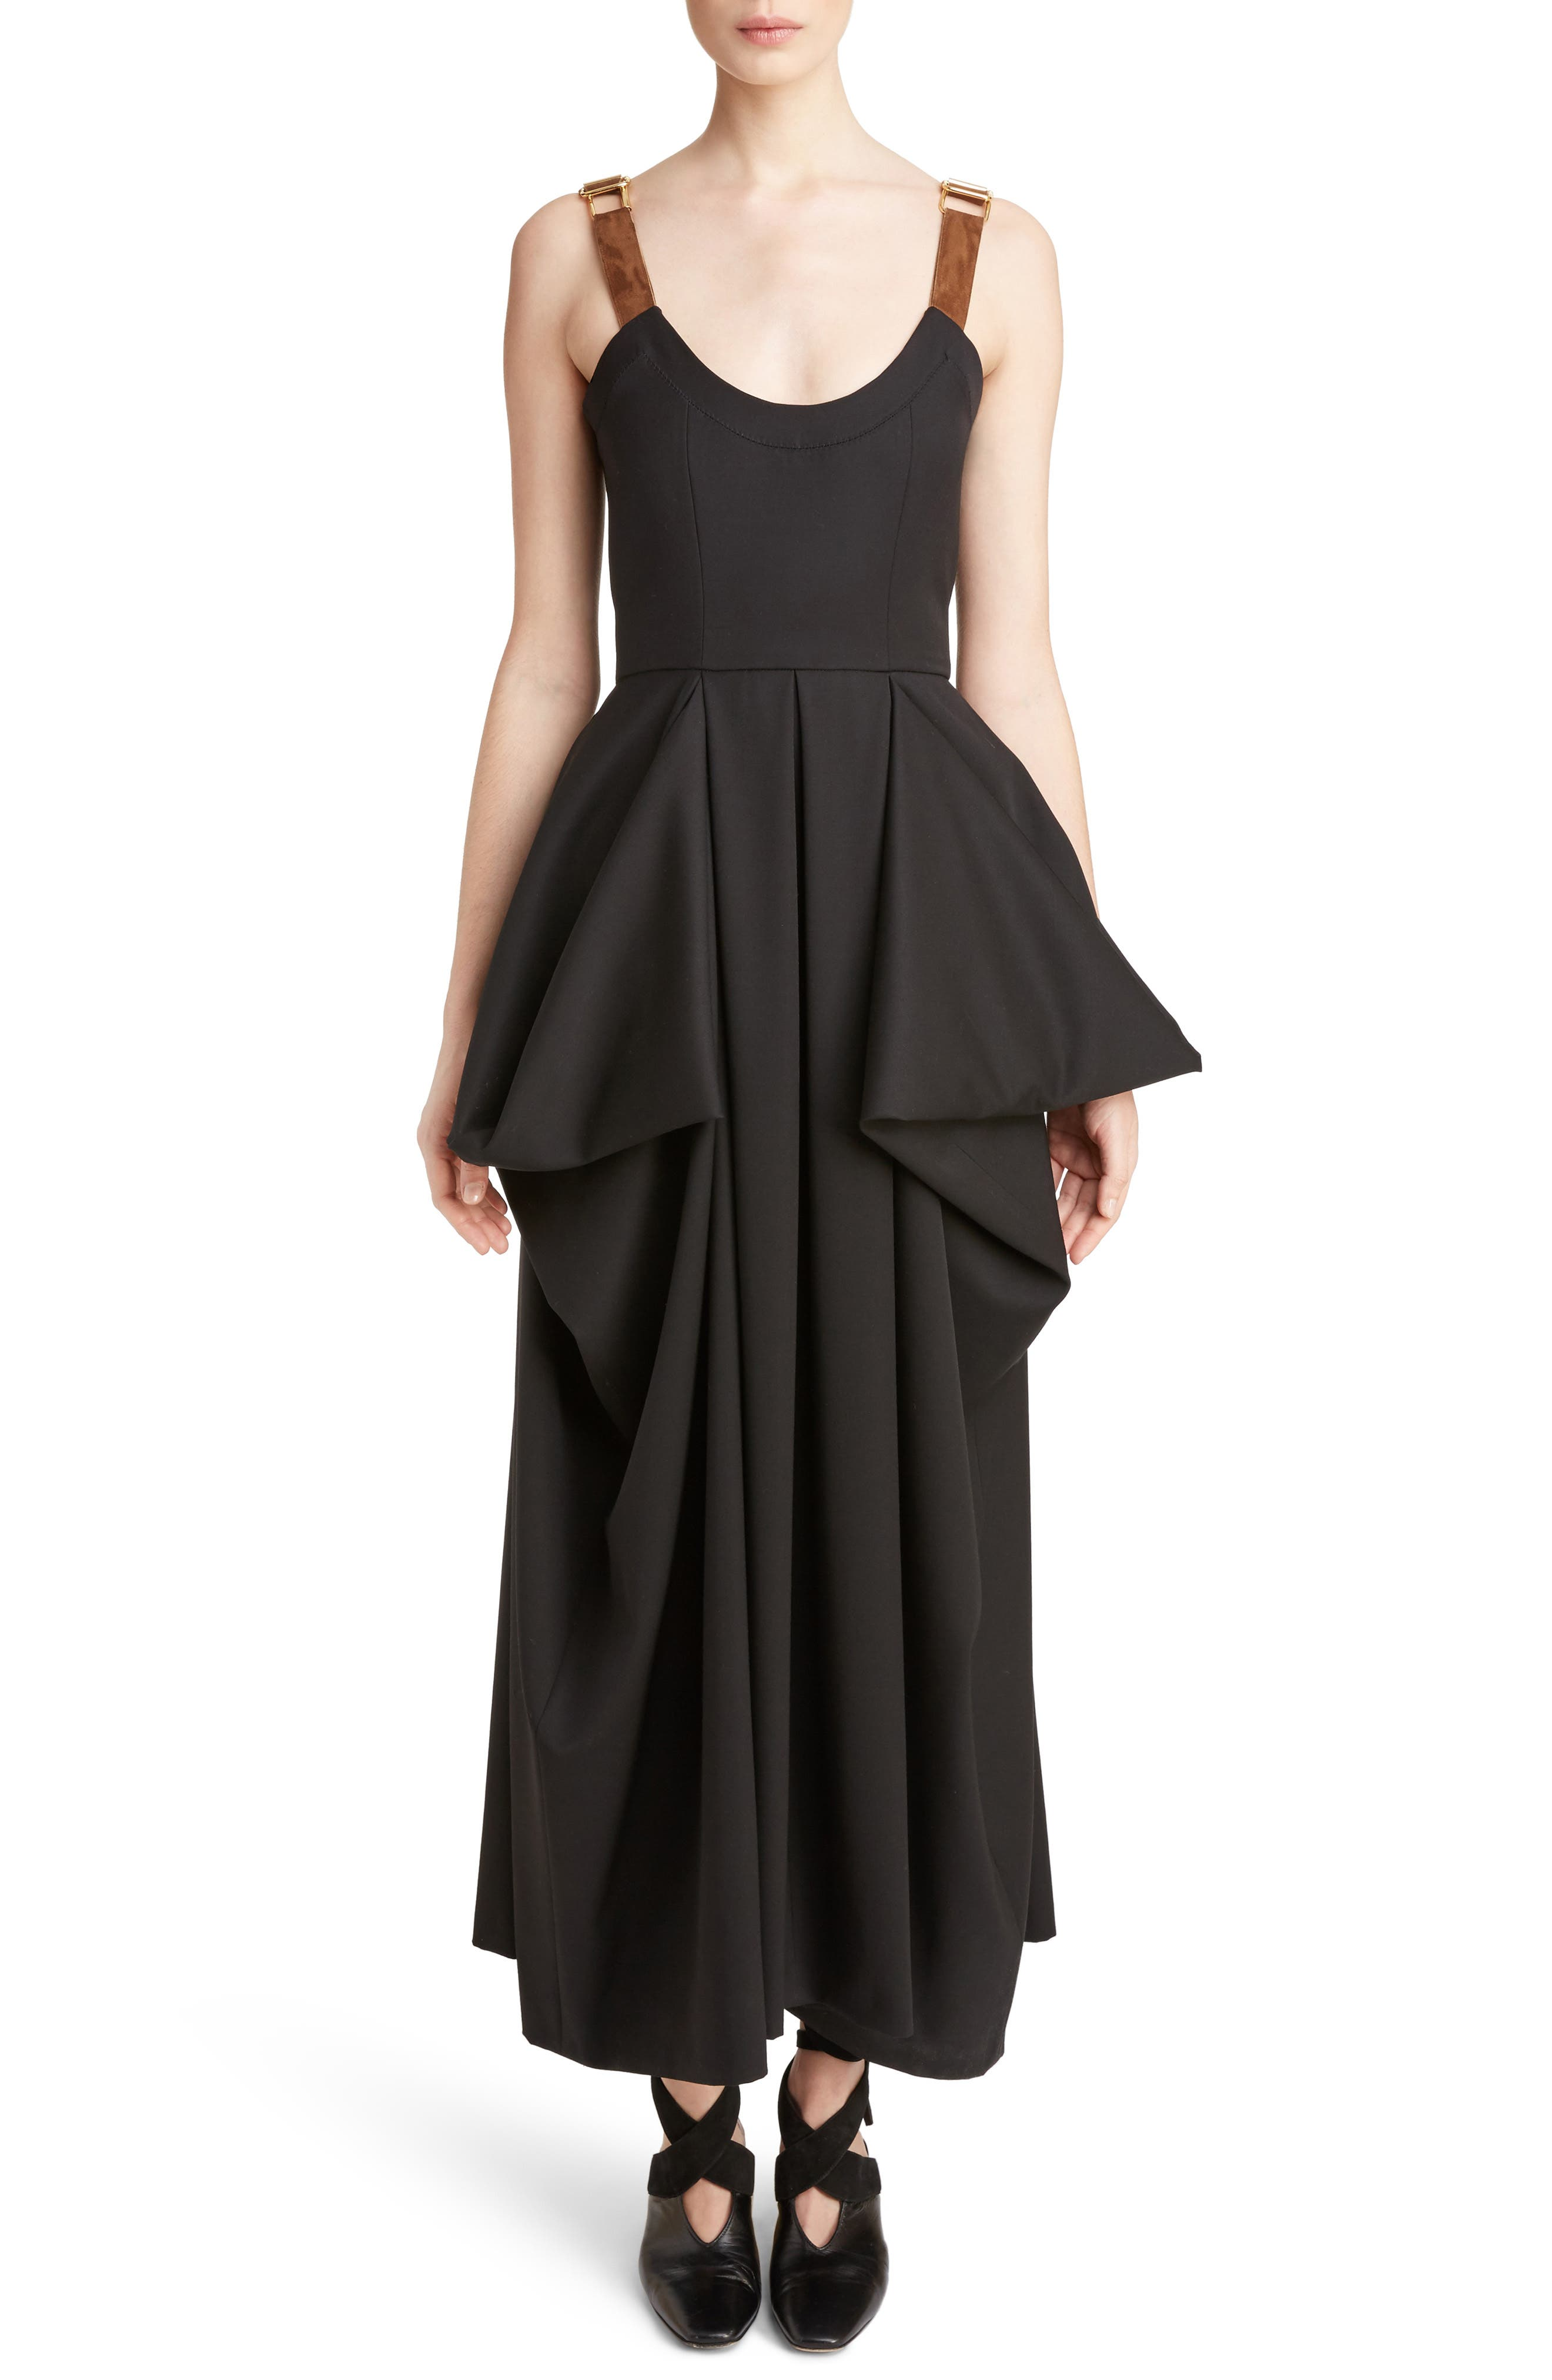 J.W.ANDERSON Drape Pocket Wool Dress,                         Main,                         color, Black